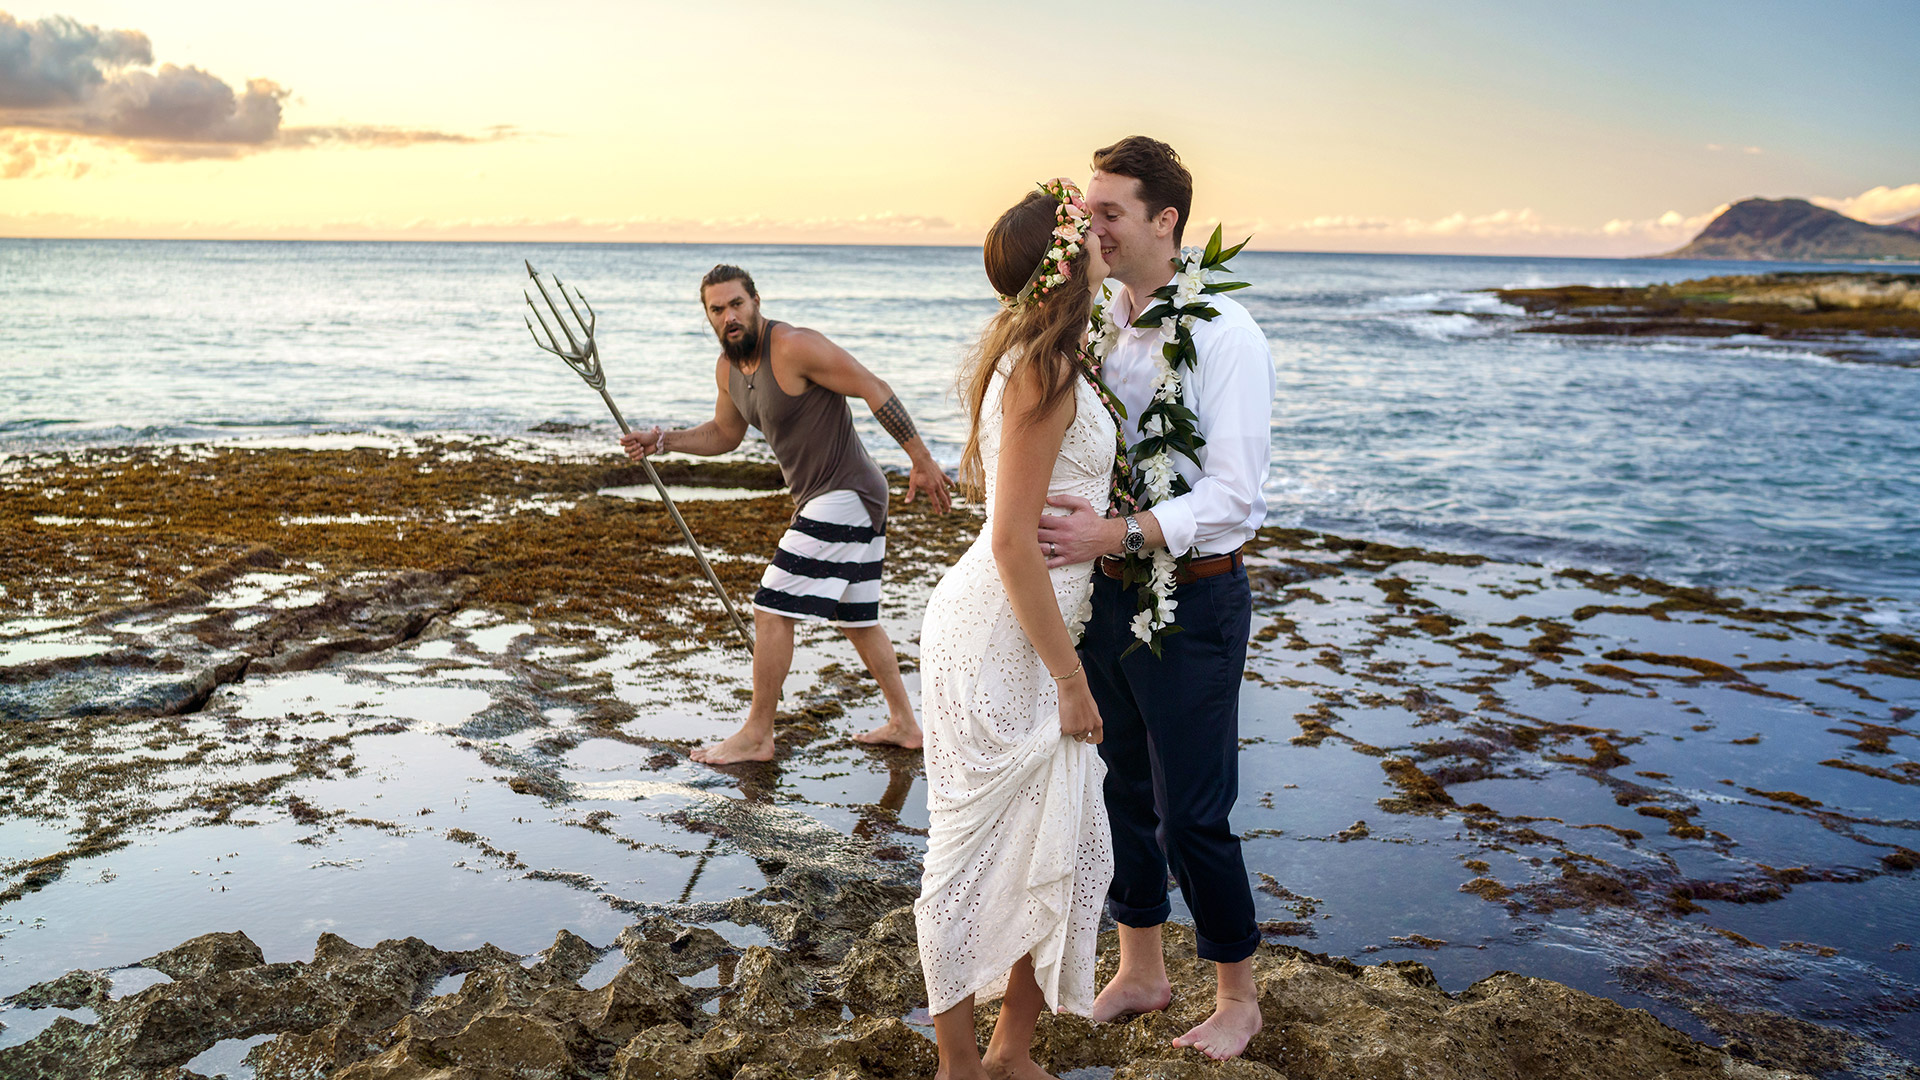 Jason Momoa photobombs our wedding on Oahu, Hawaii